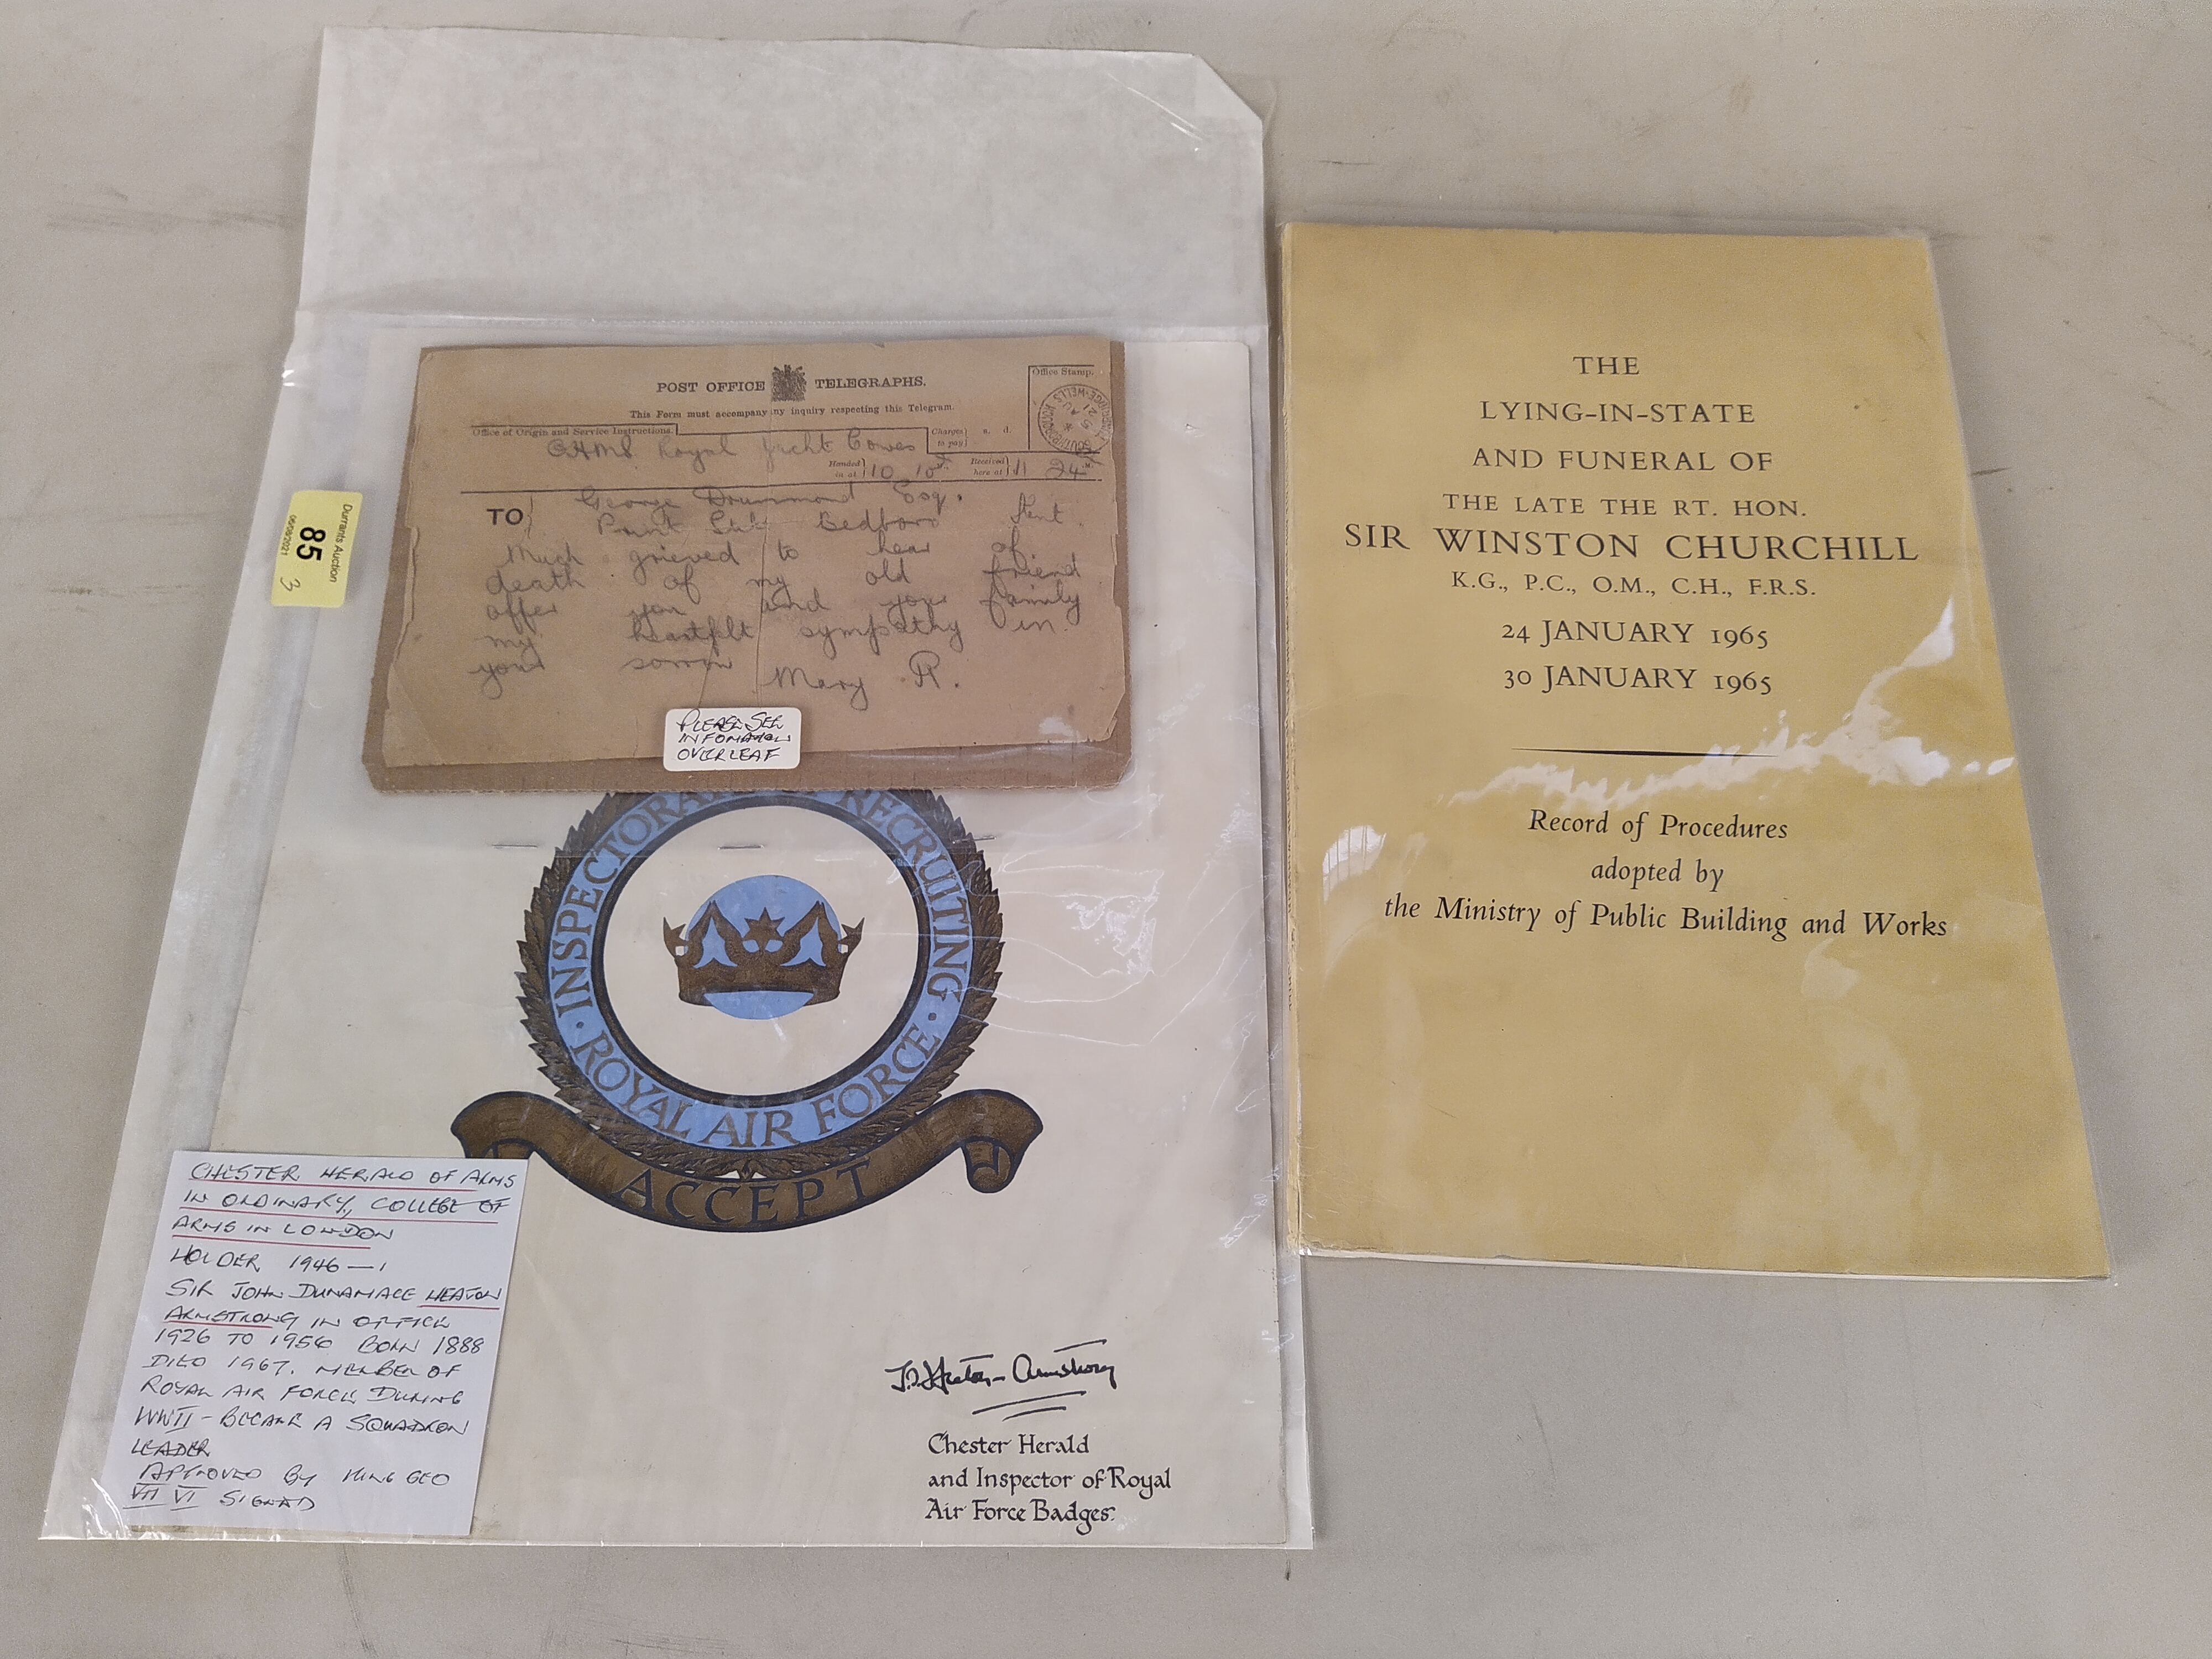 A telegram from Queen Mary from the Royal Yacht at Cowes August 21, subject George Drummond Esq,